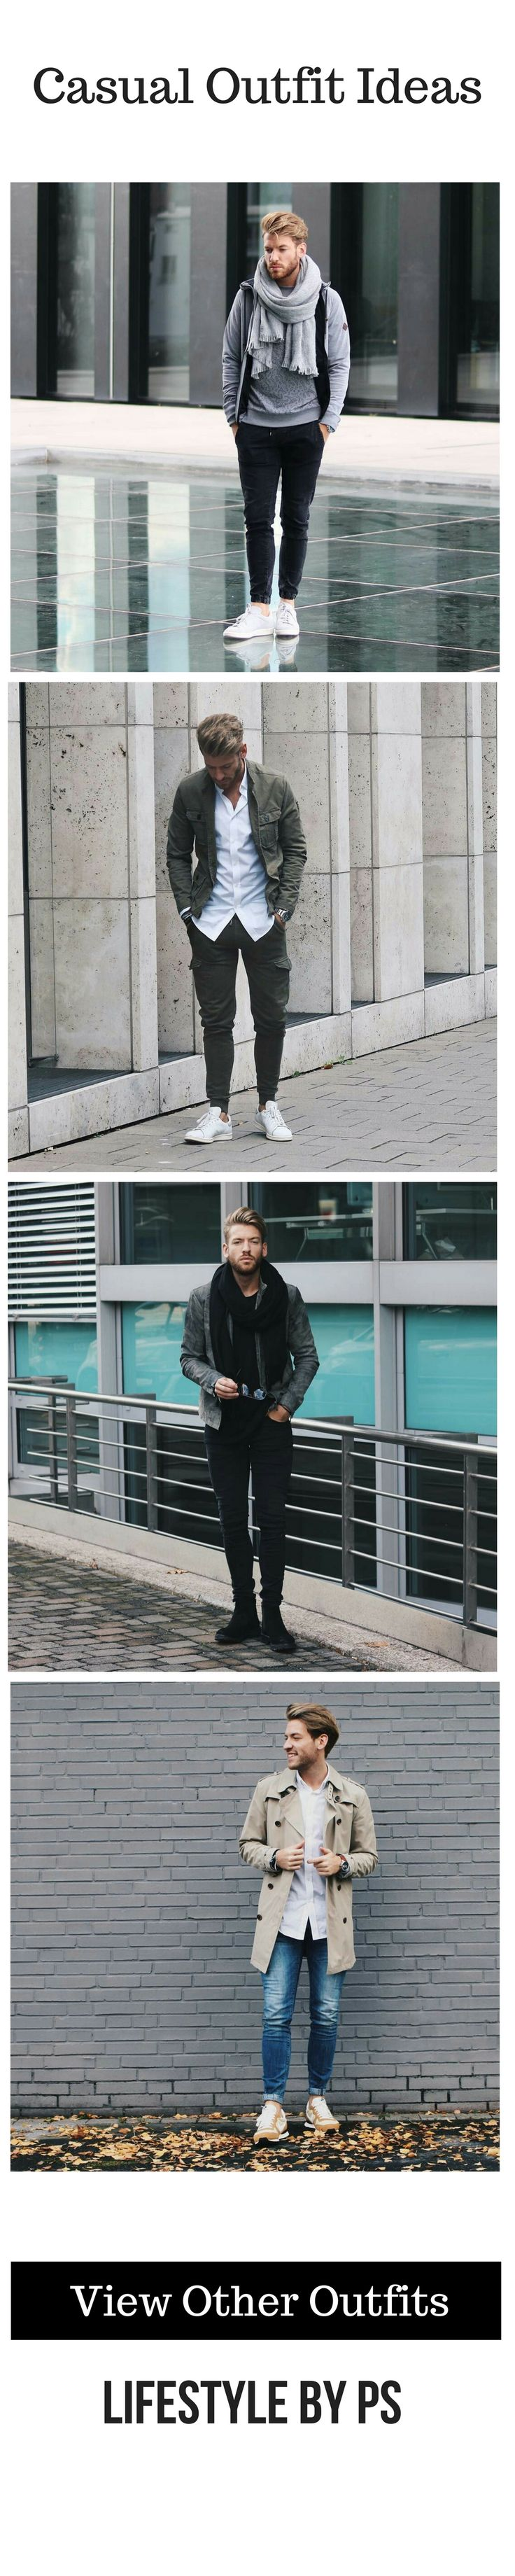 casual outfit ideas for men.. #mens #fashion